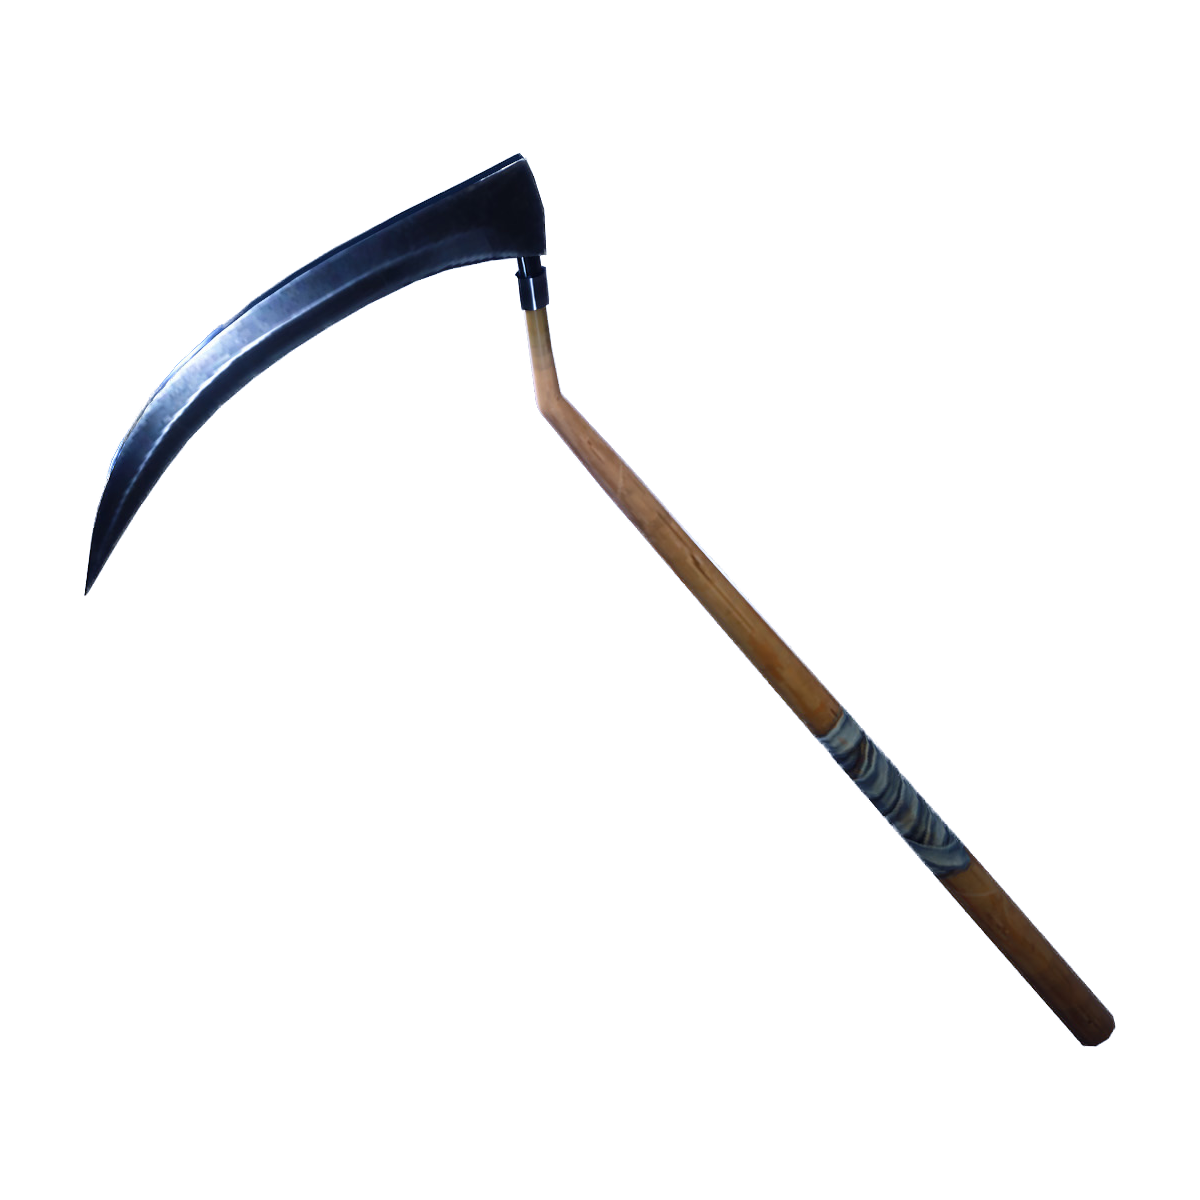 Transparent reaper fortnite battle royale. Png image purepng free